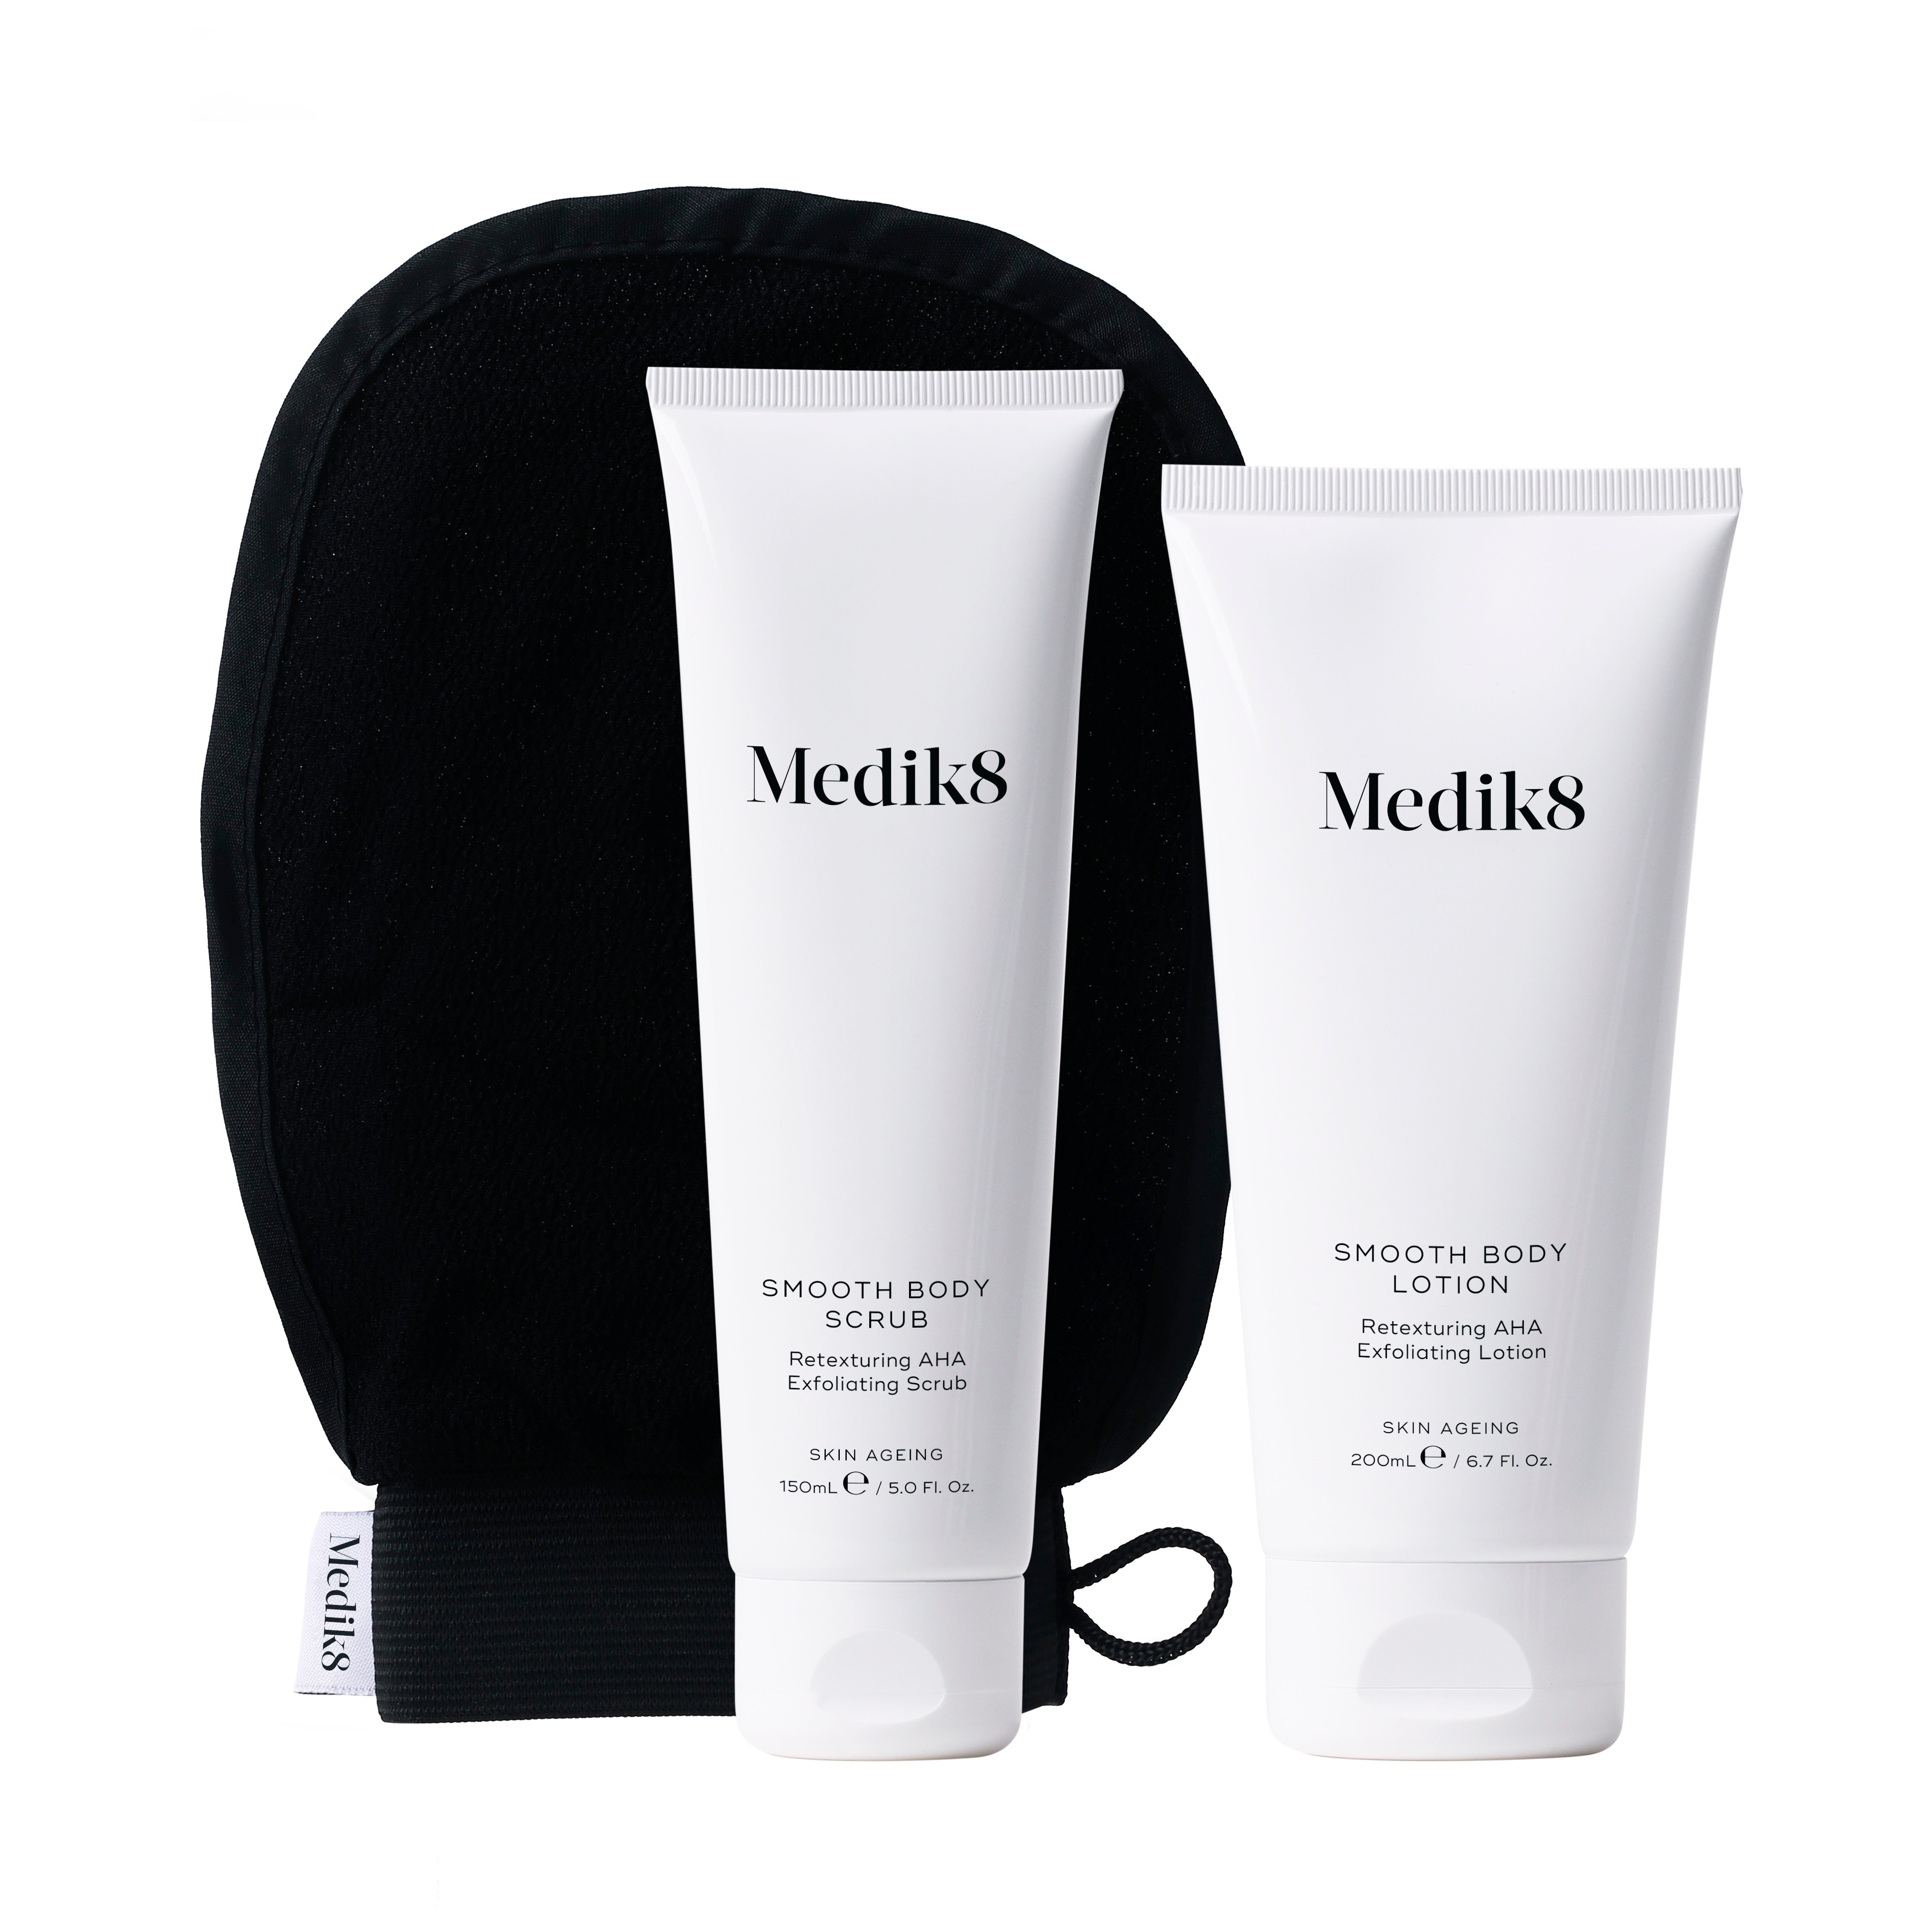 Smooth Body Exfoliating Kit